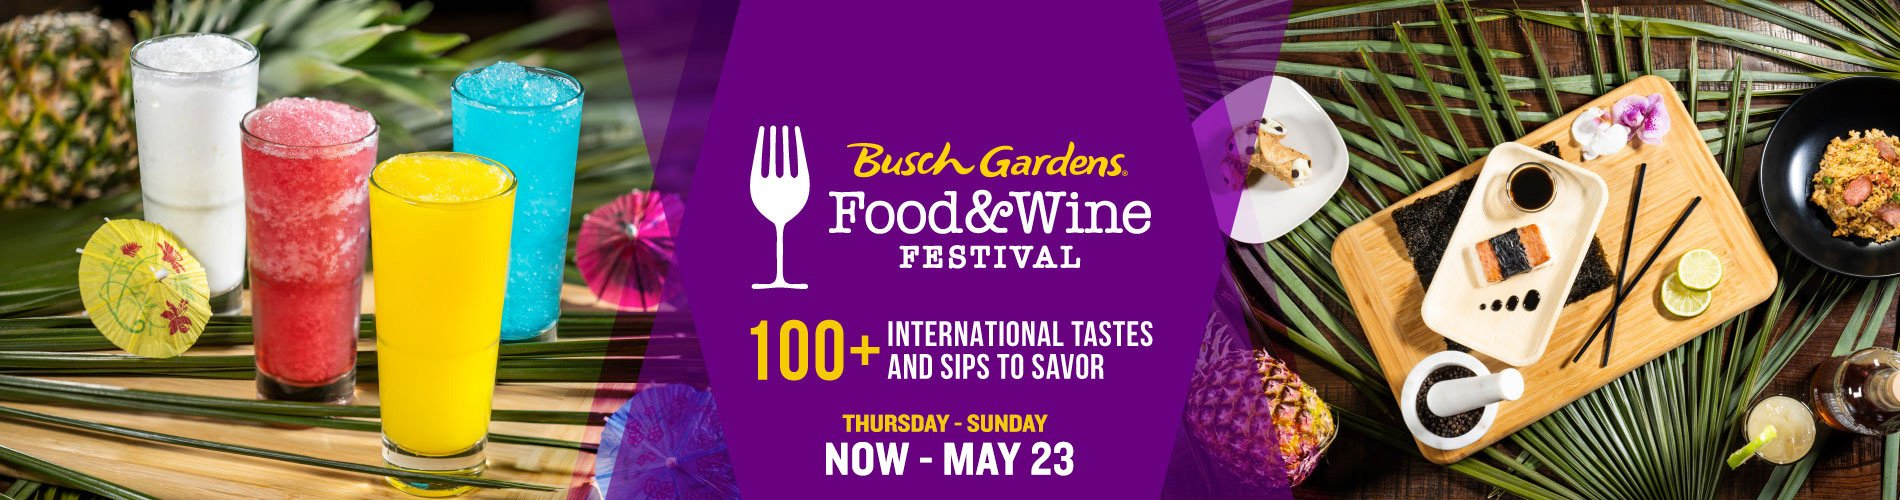 100+ International tastes and sips to savor at the Busch Gardens Food & Wine Festival, Thursday through Sunday, happening now until May 23